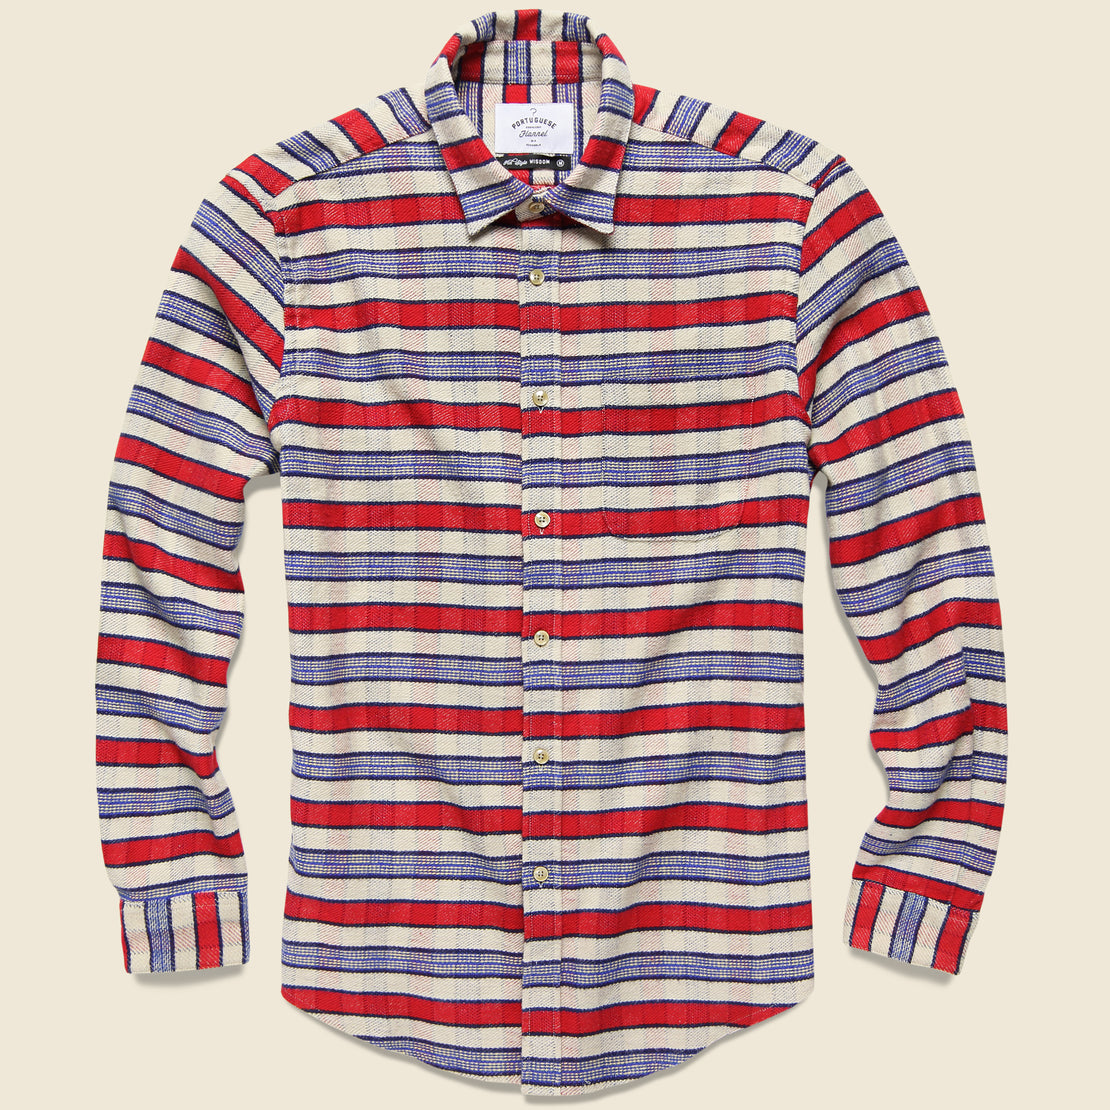 Portuguese Flannel Jersey Plaid Flannel - Red/White